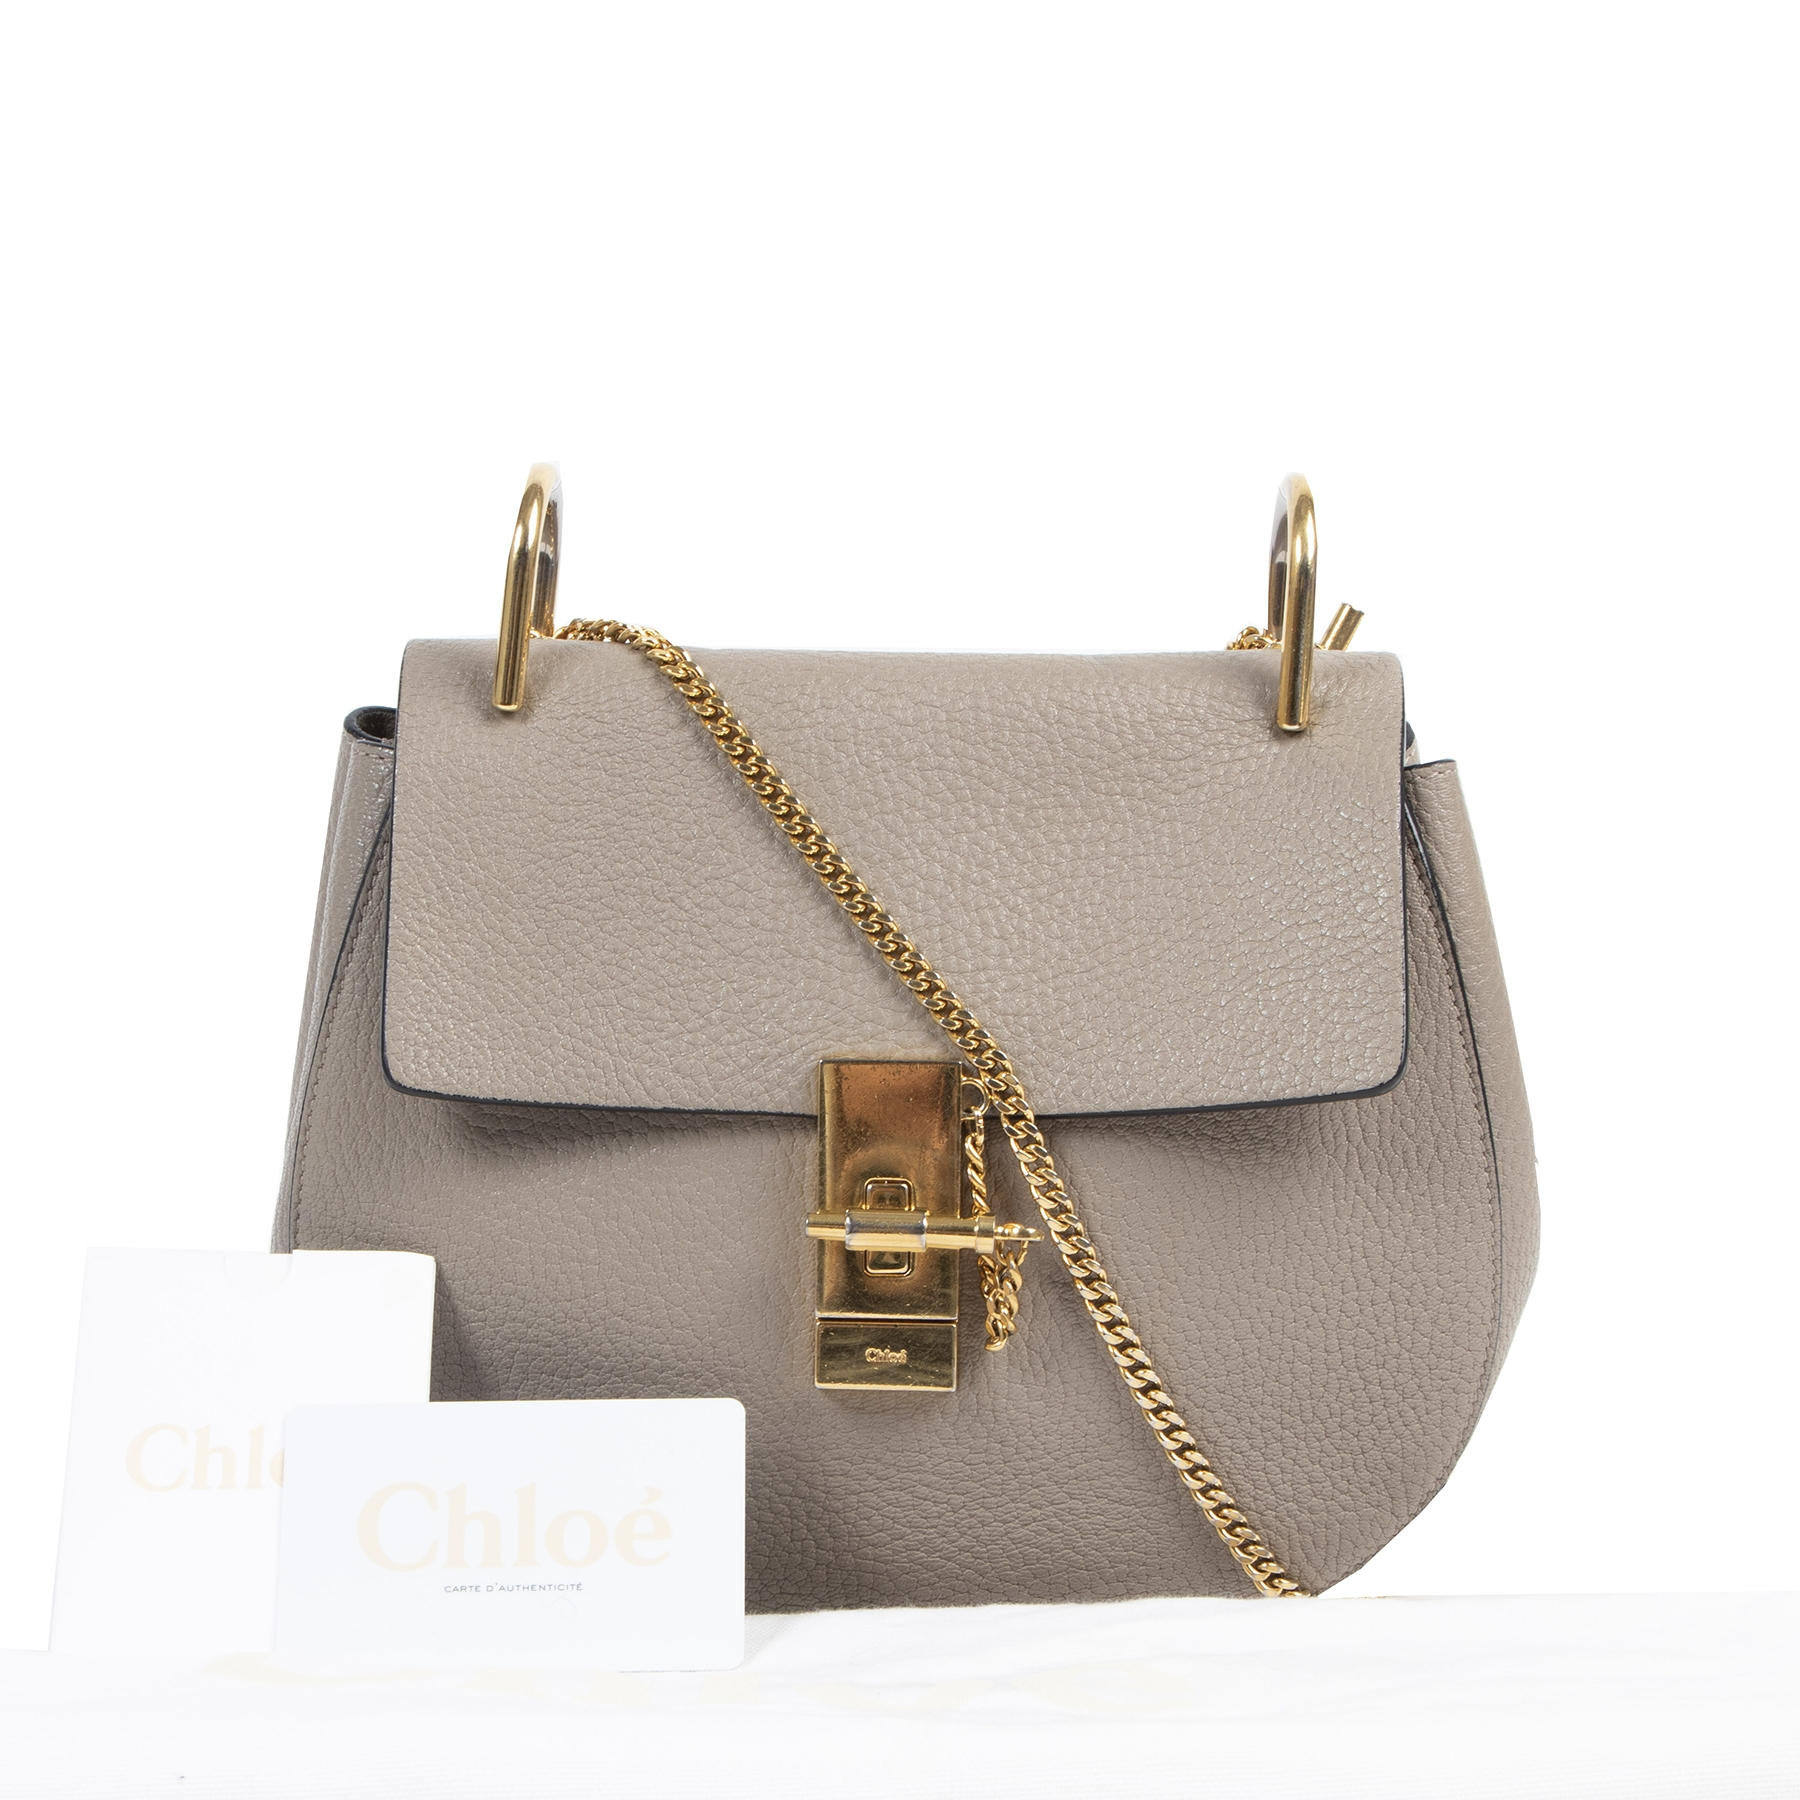 Authentieke tweedehands vintage Chloé Grey Drew Shoulder Bag koop online webshop LabelLOV